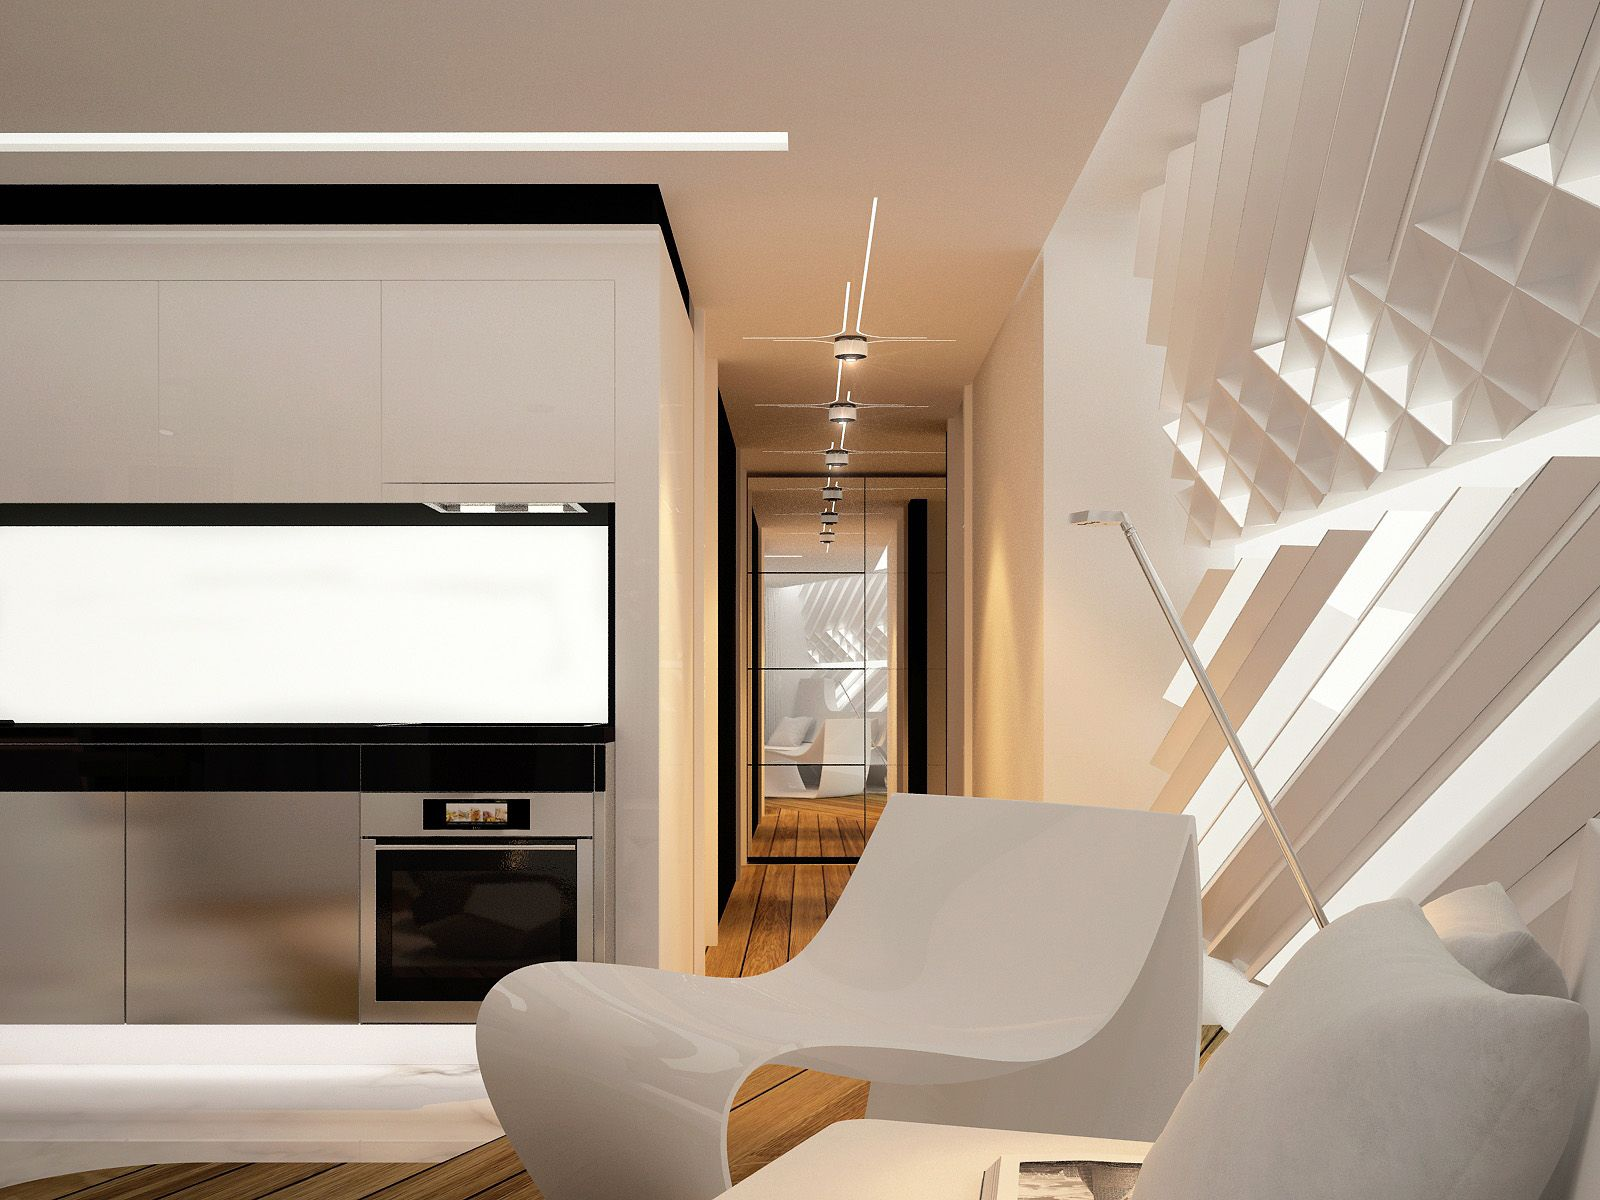 Creative apartment designs ideas with cute and sweet decor